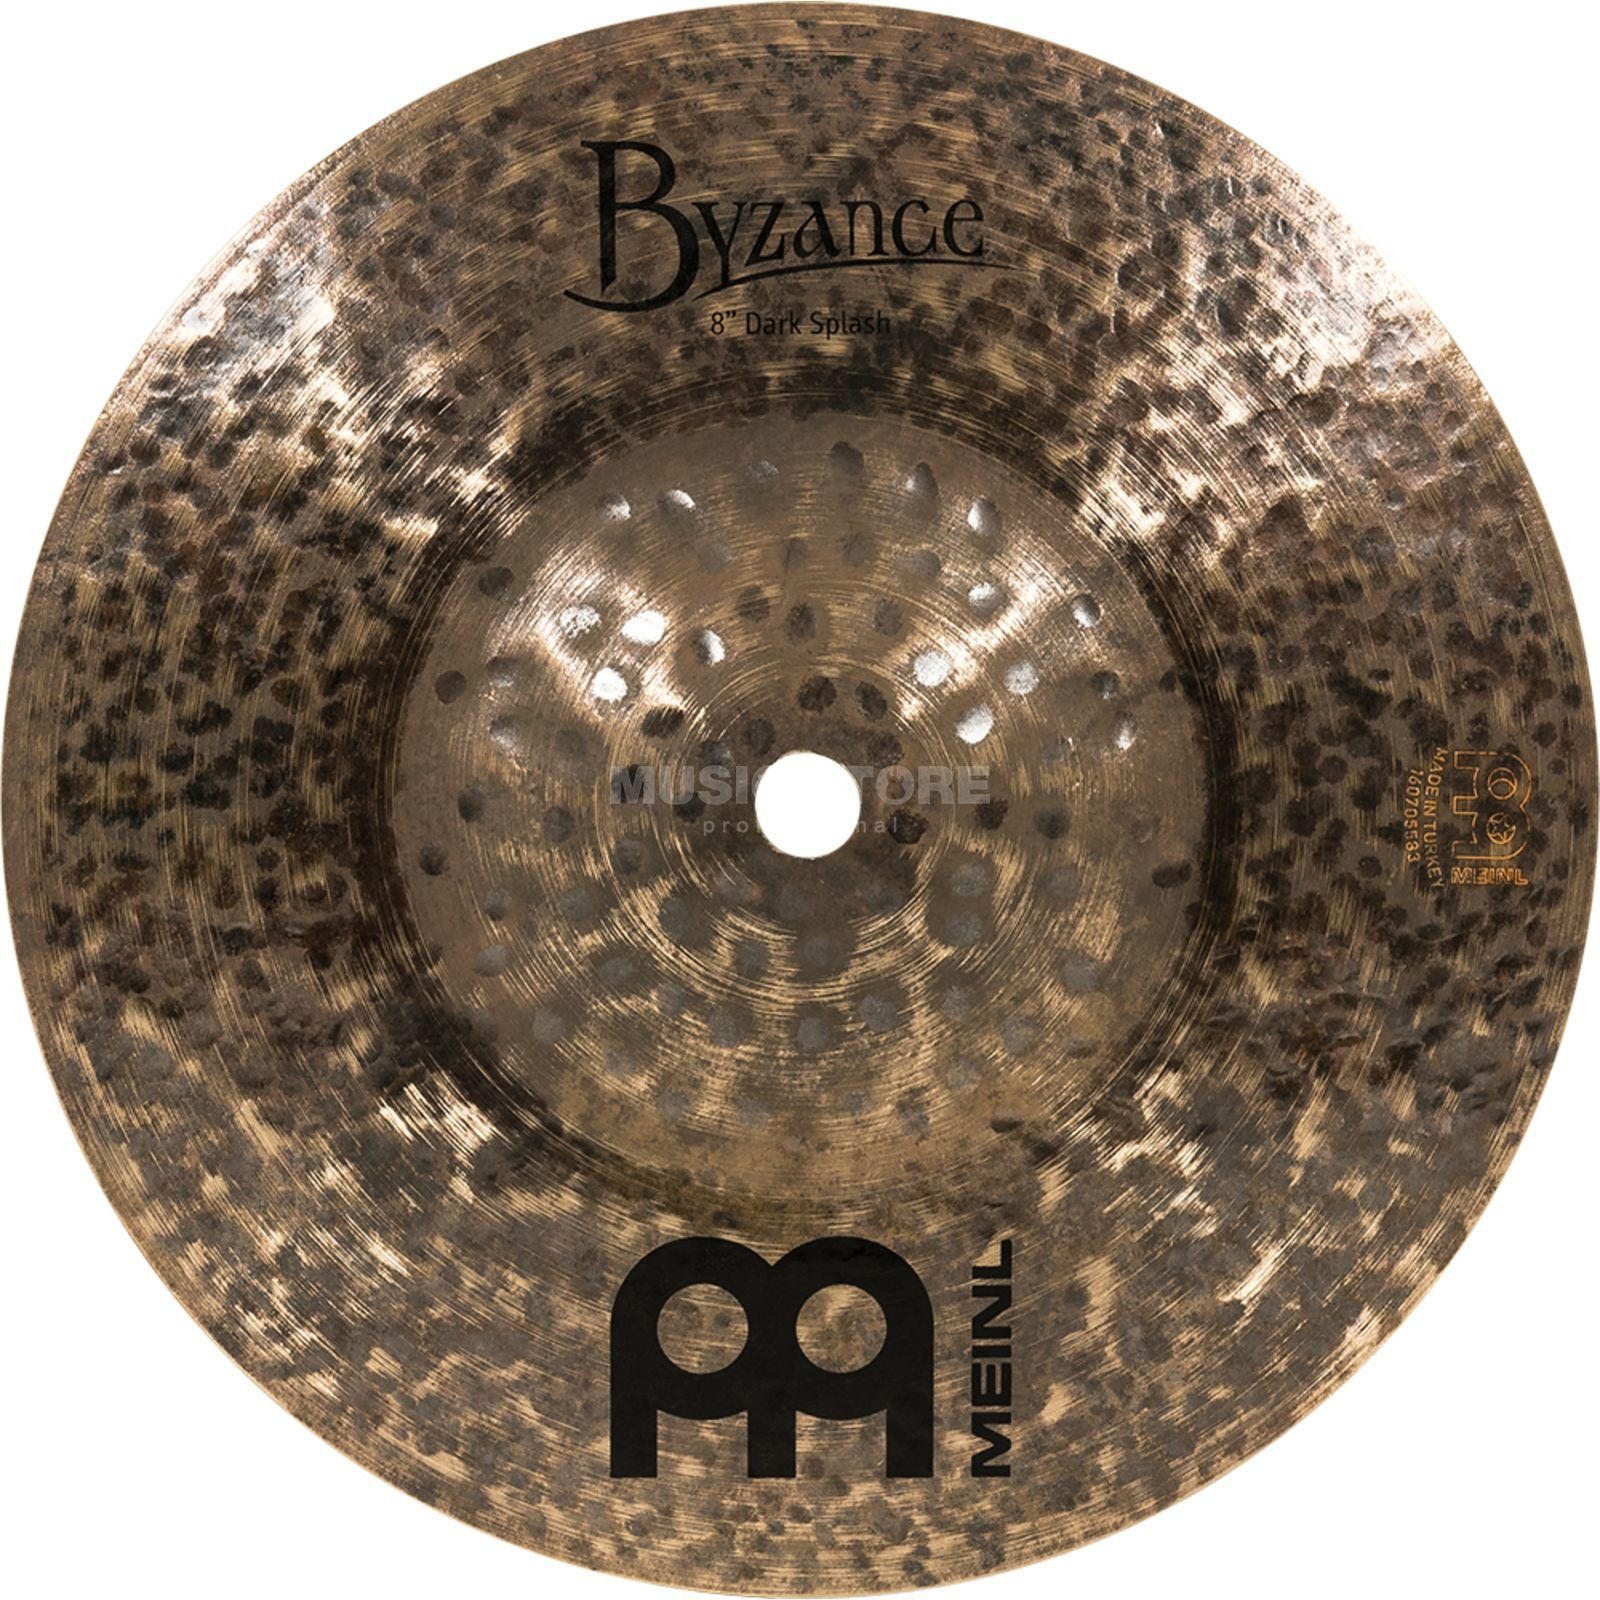 "Meinl Byzance Dark Splash 8"" B8DAS, Dark Finish Produktbild"